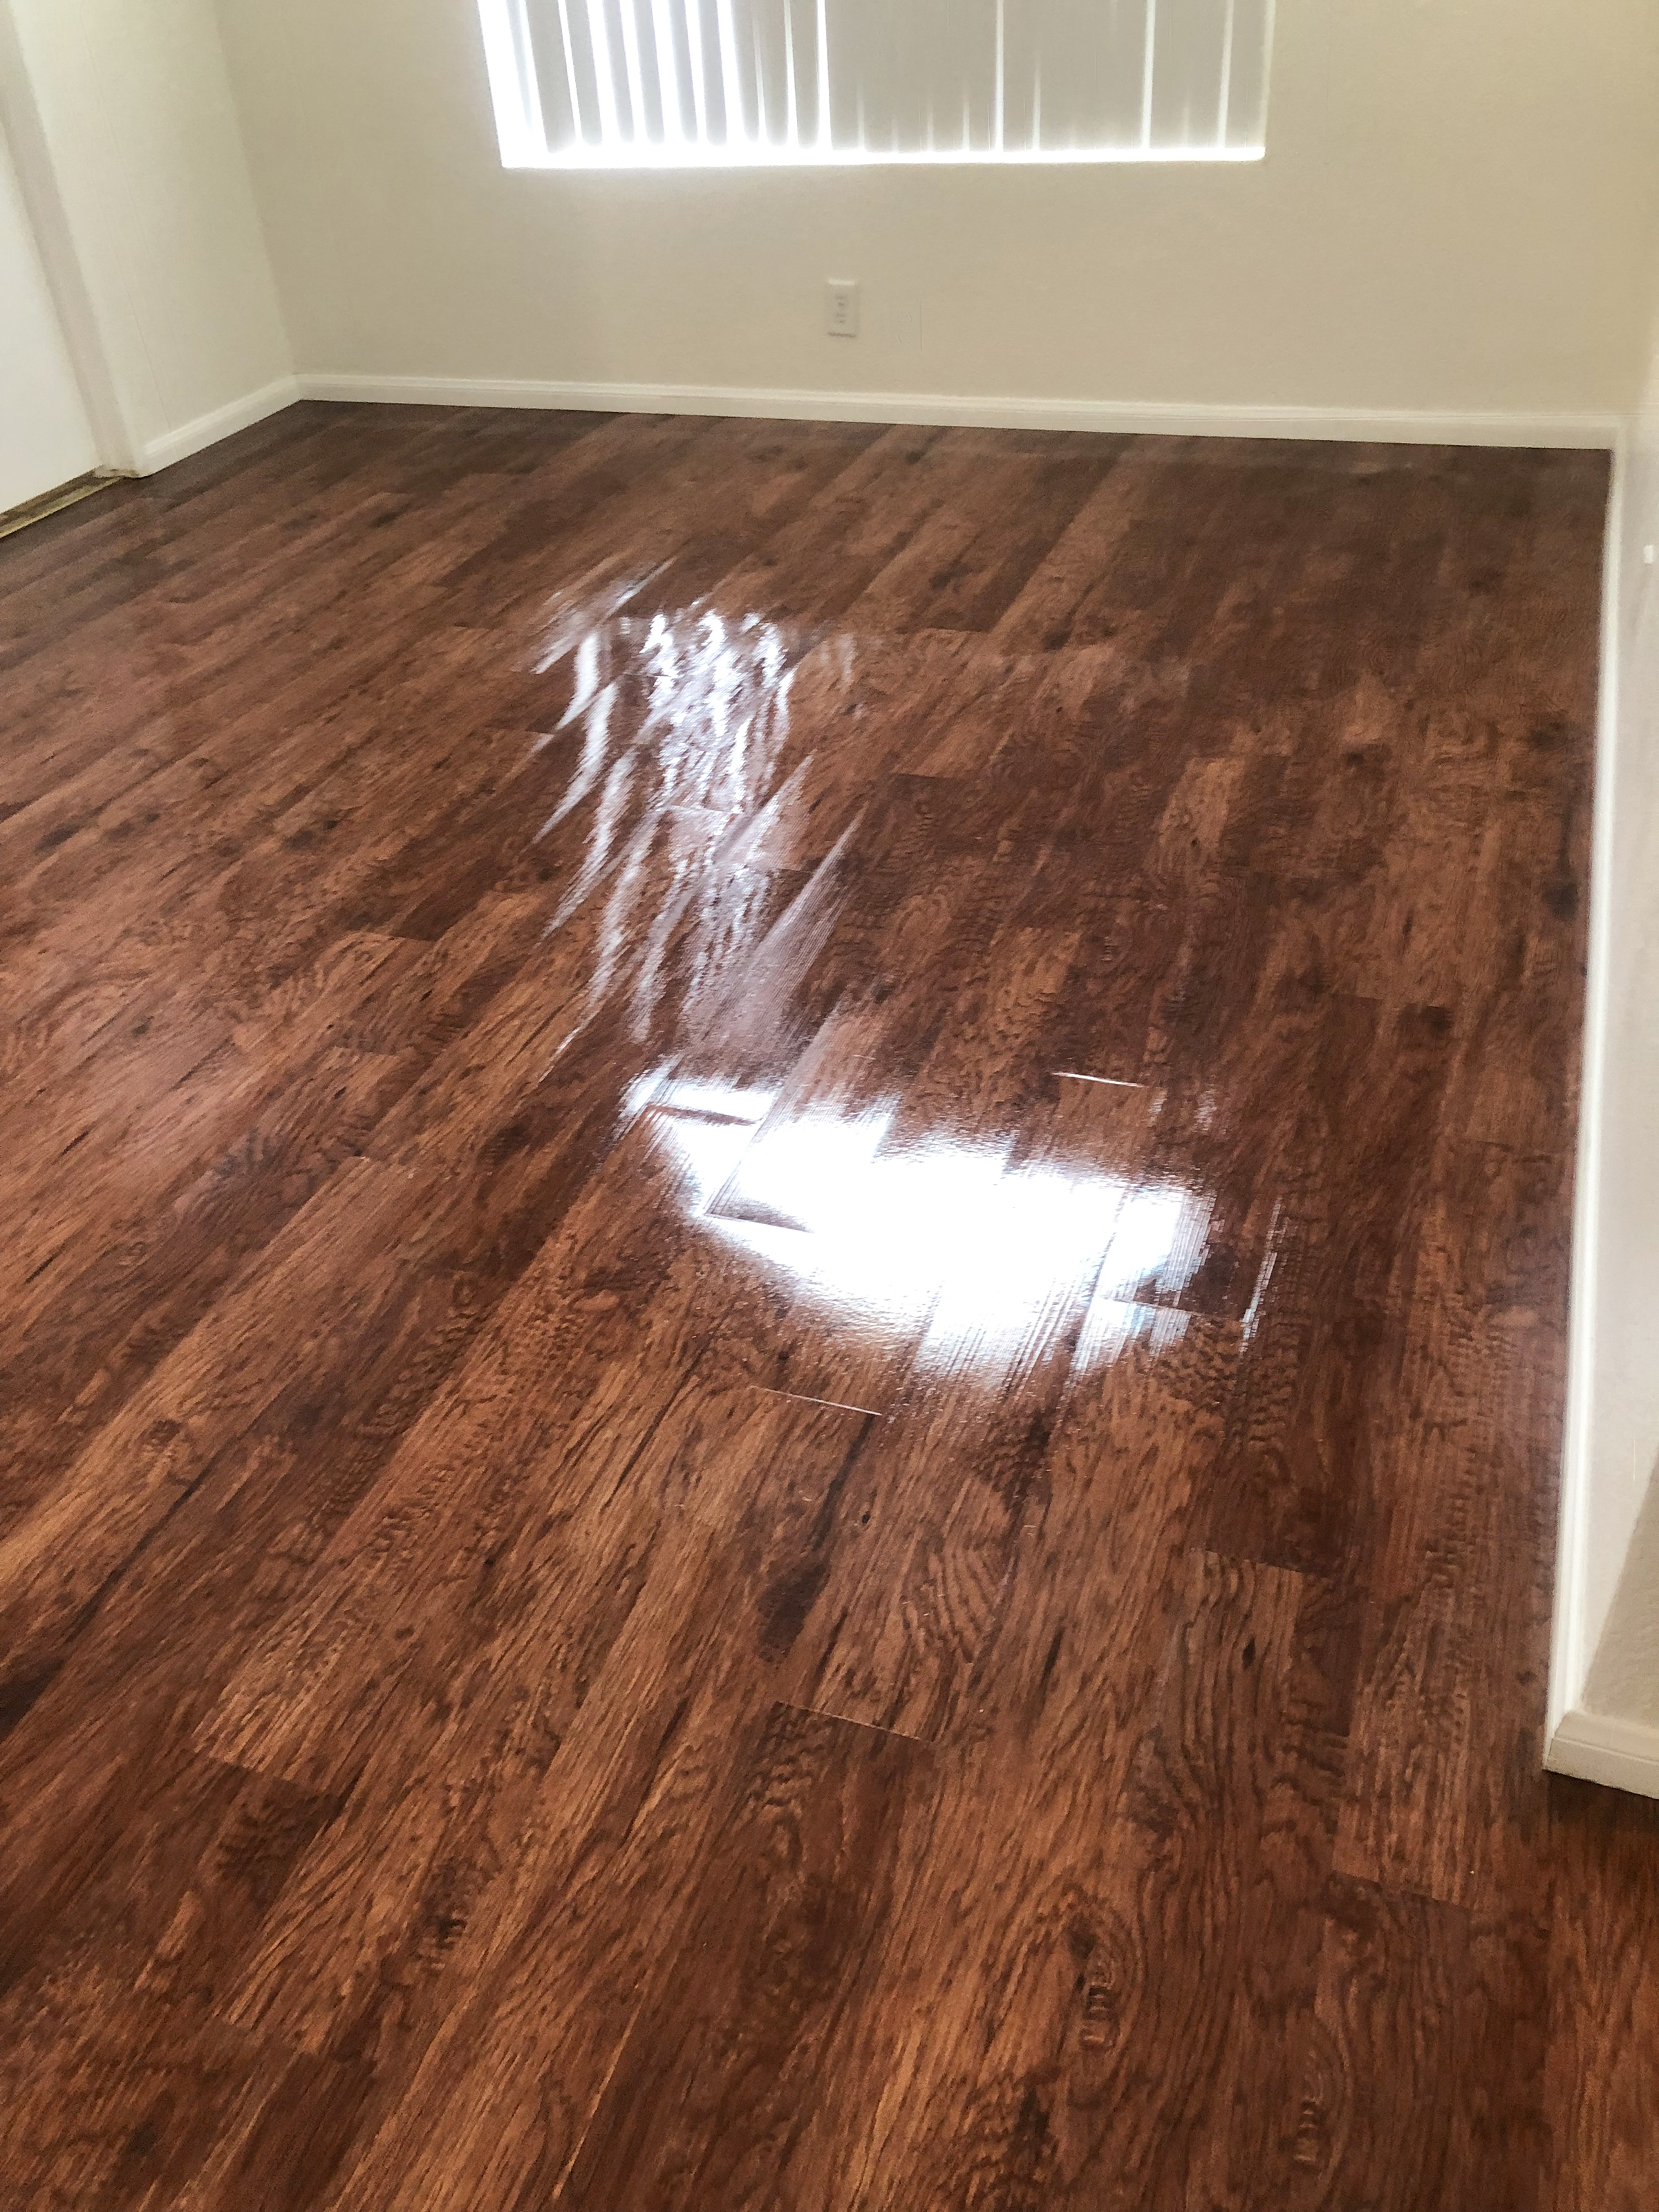 Affordable Carpet & Air Duct Cleaning